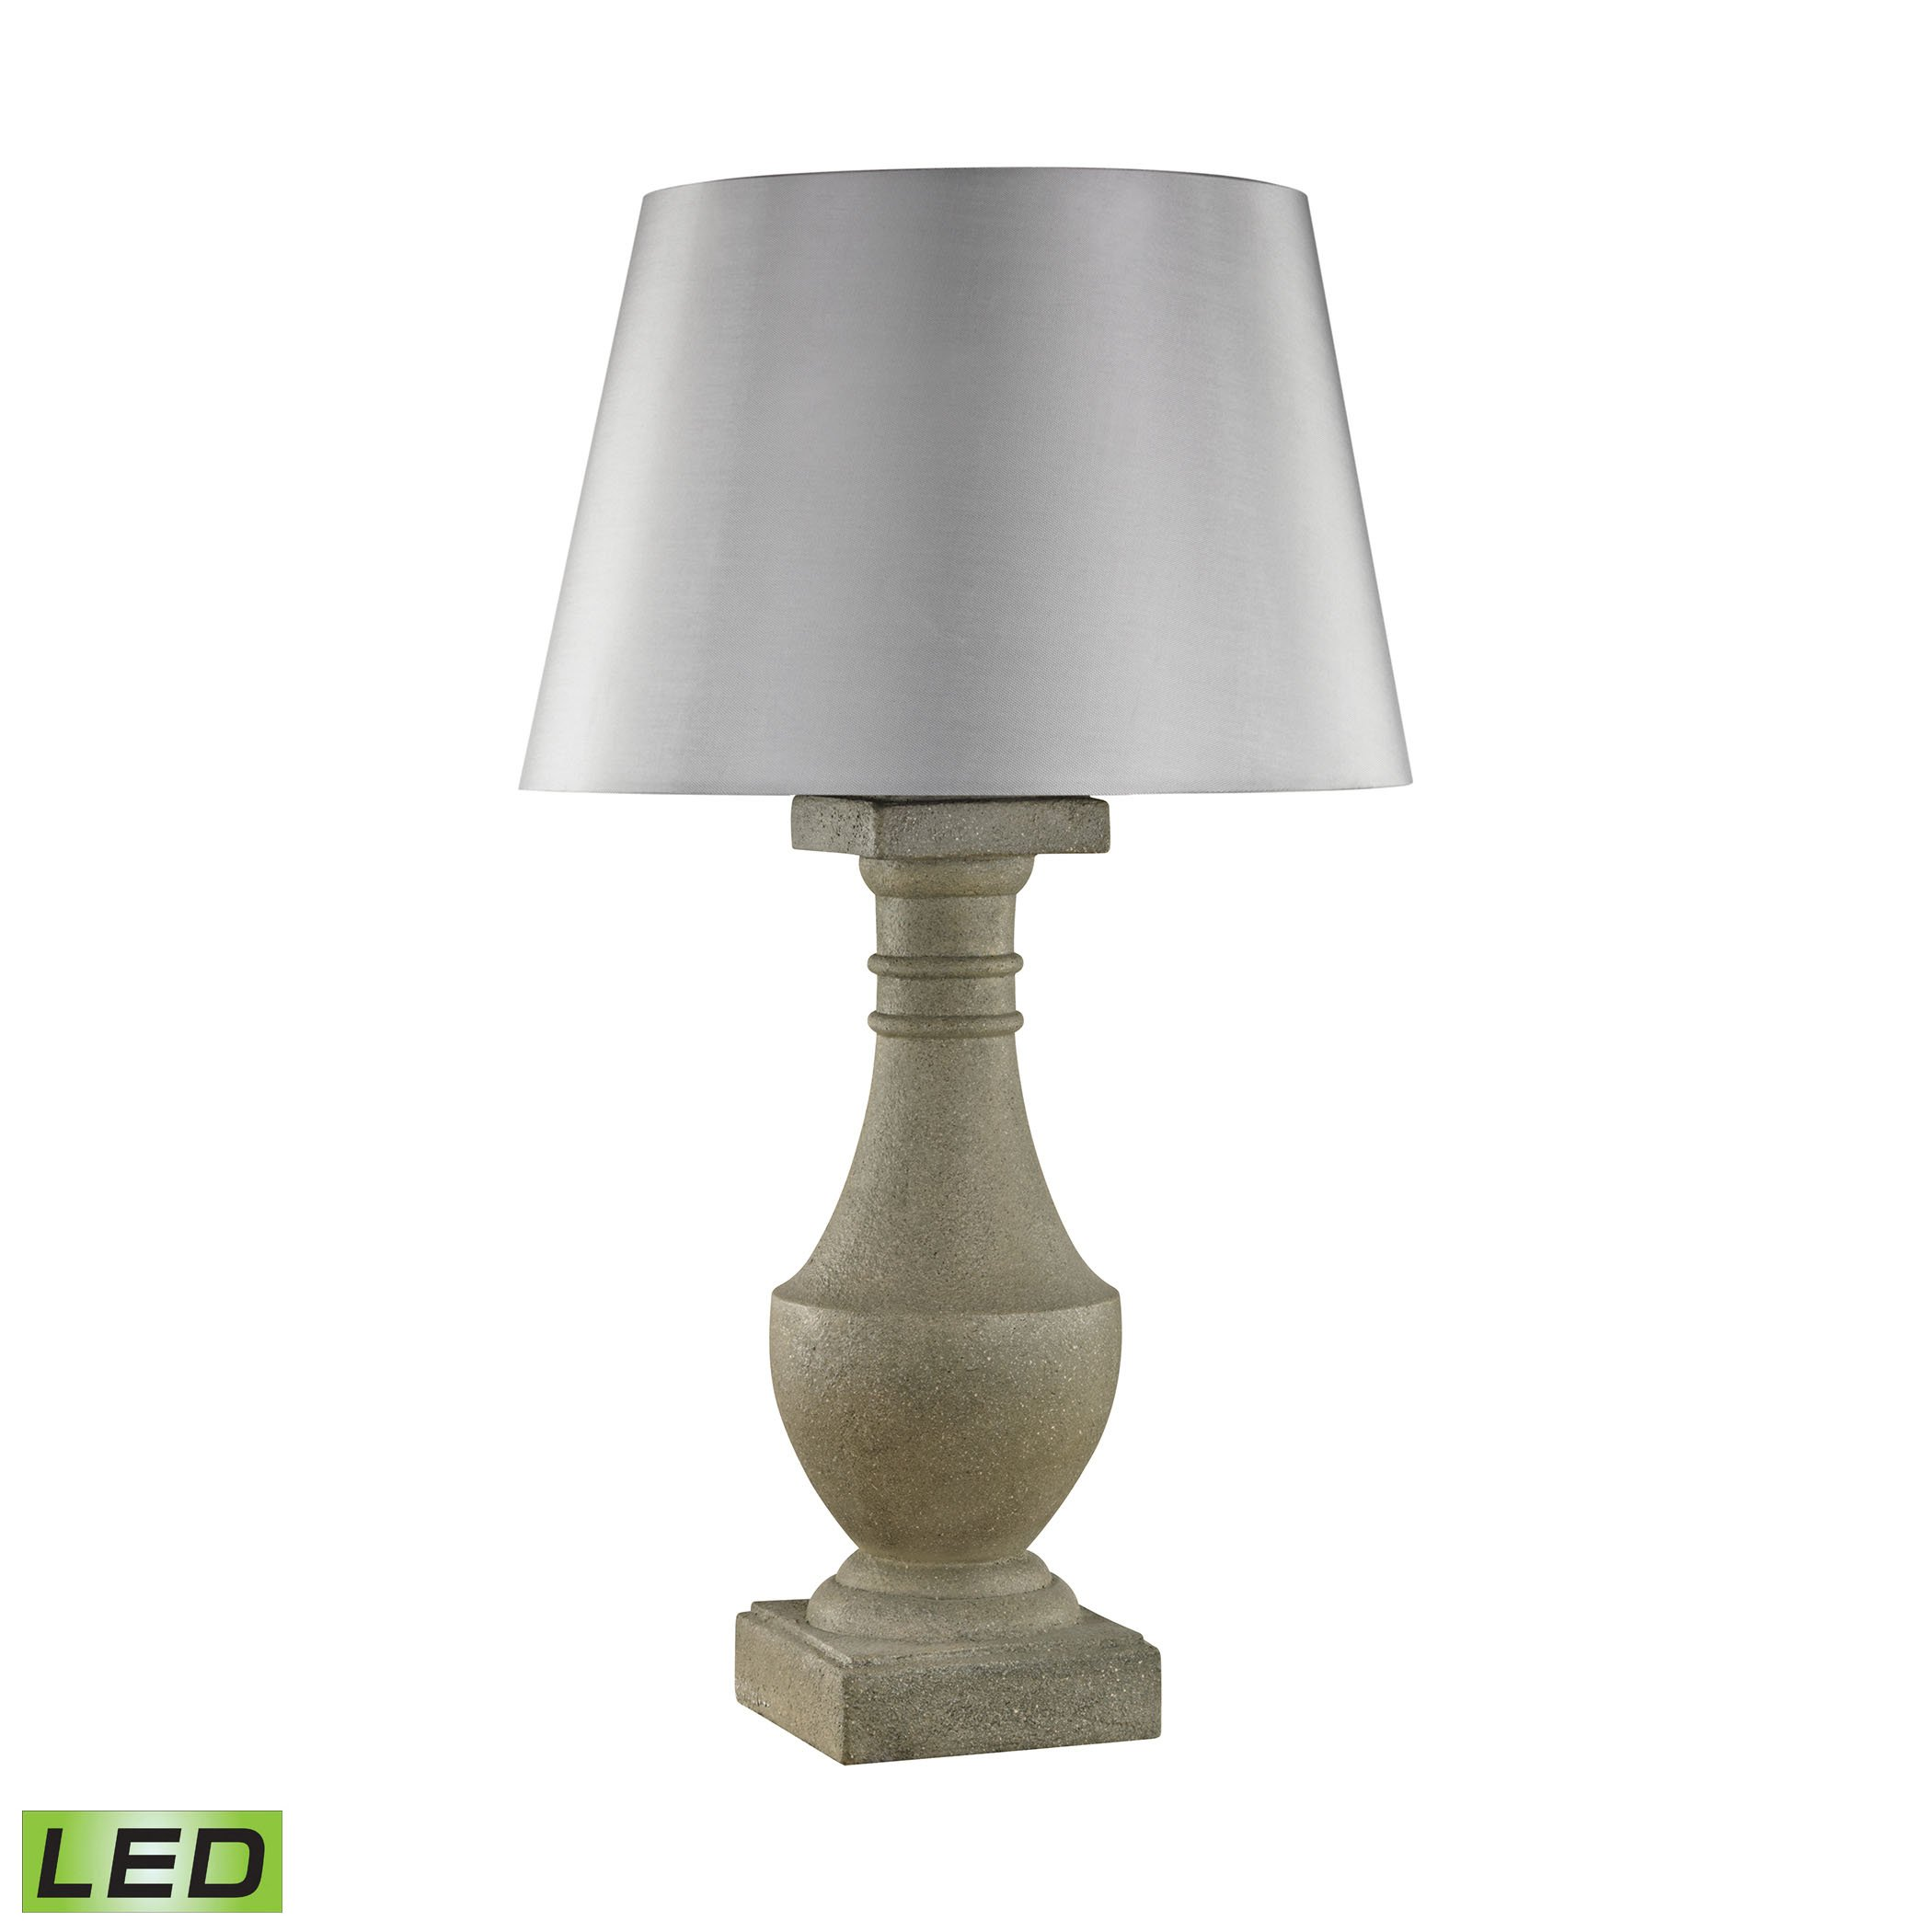 Saint Emilion Outdoor LED Table Lamp by AR Lighting